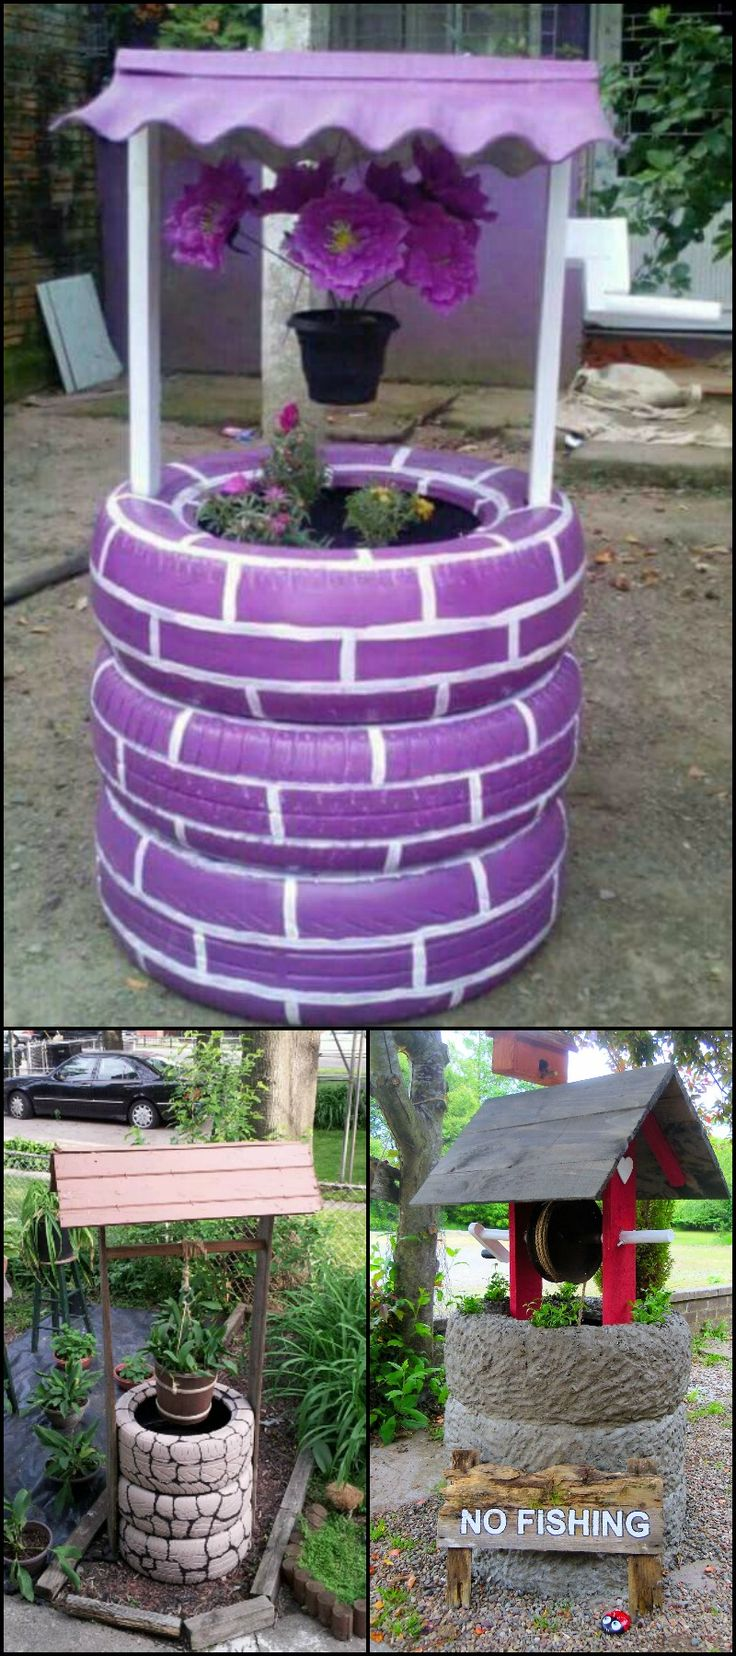 Wishing Well Planter Made From Recycled Tires. Dyi Garden IdeasDiy IdeasGarden  Crafts ...